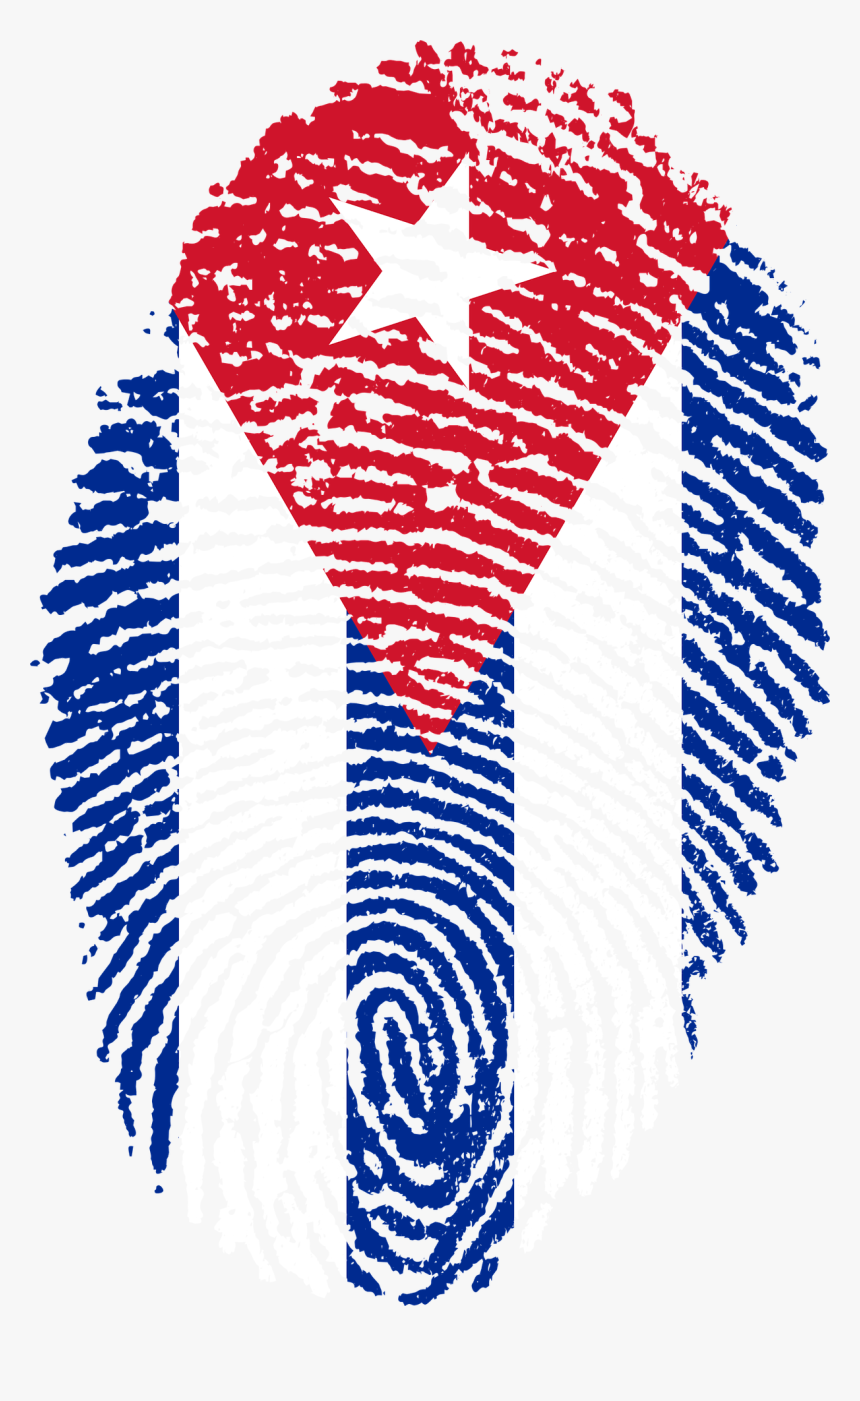 Png Puerto Rico, Transparent Png, Free Download